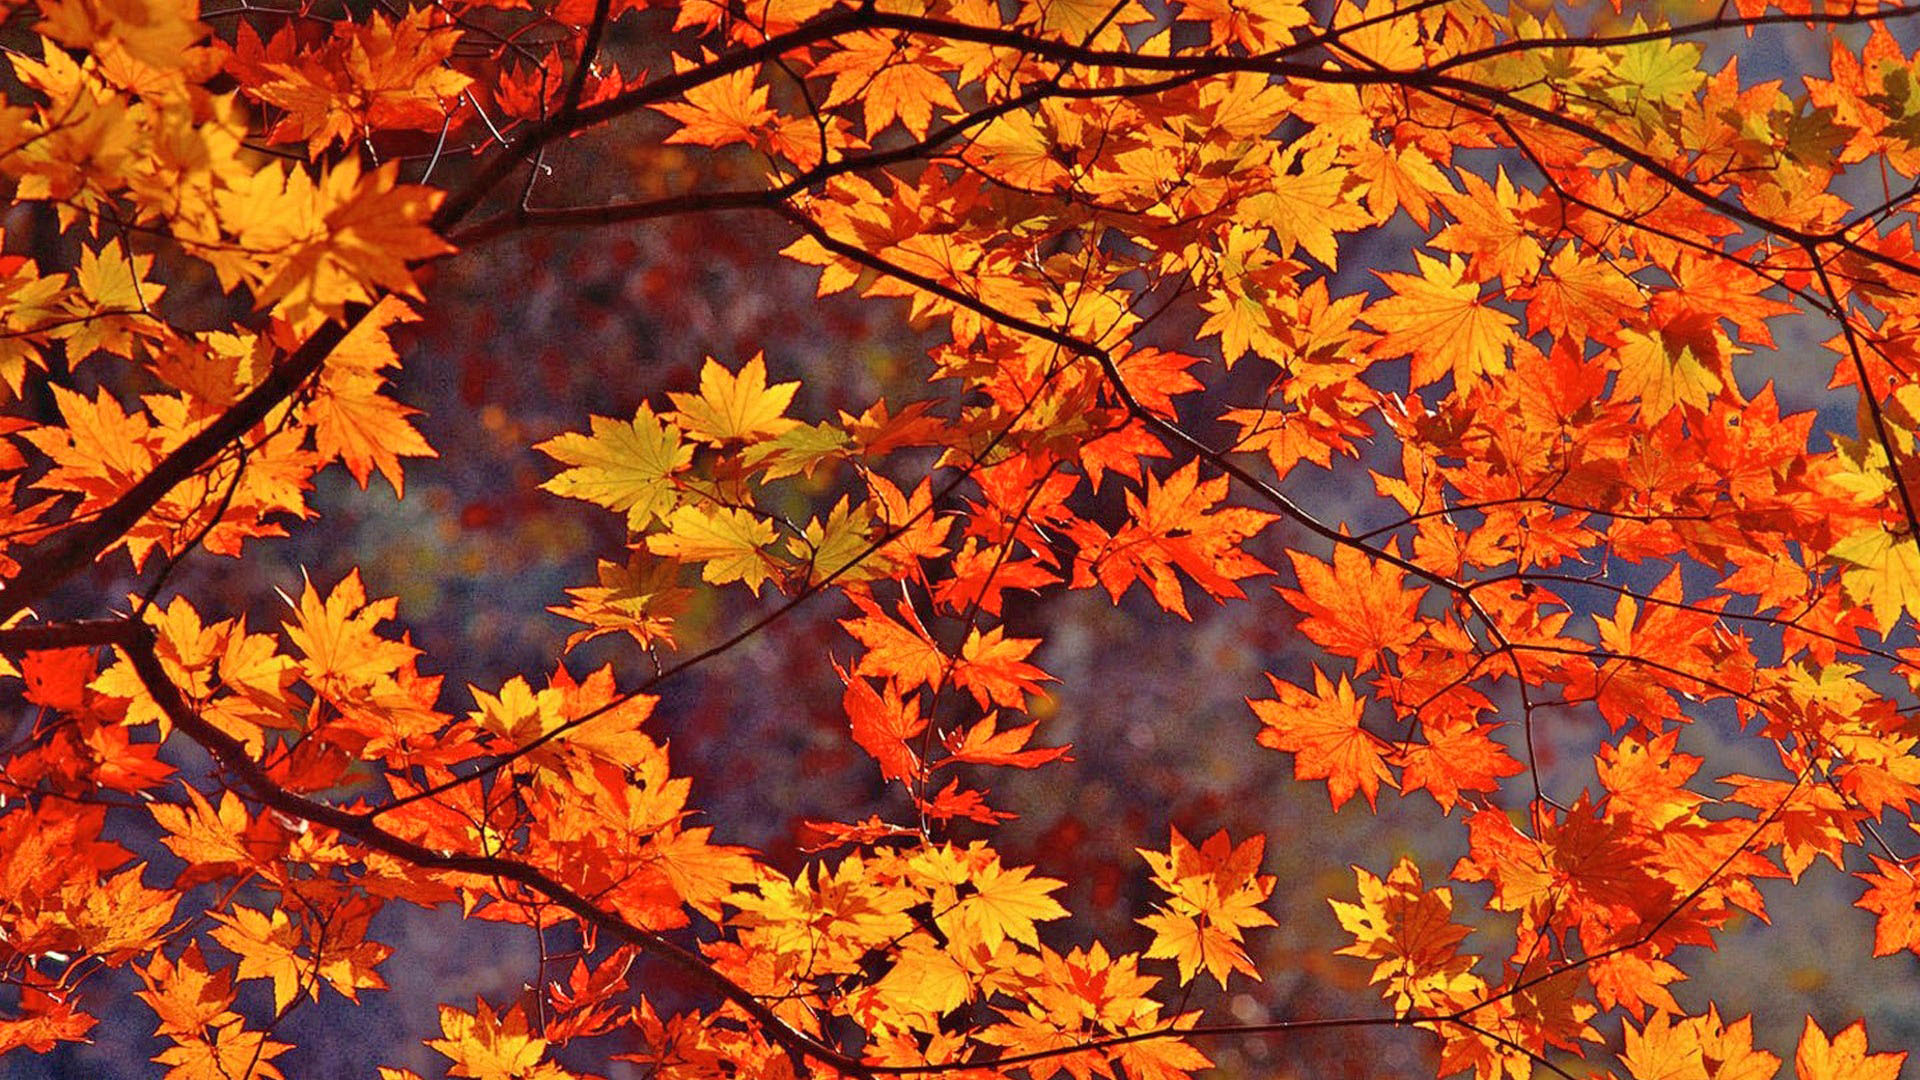 autumn foliage wallpaper